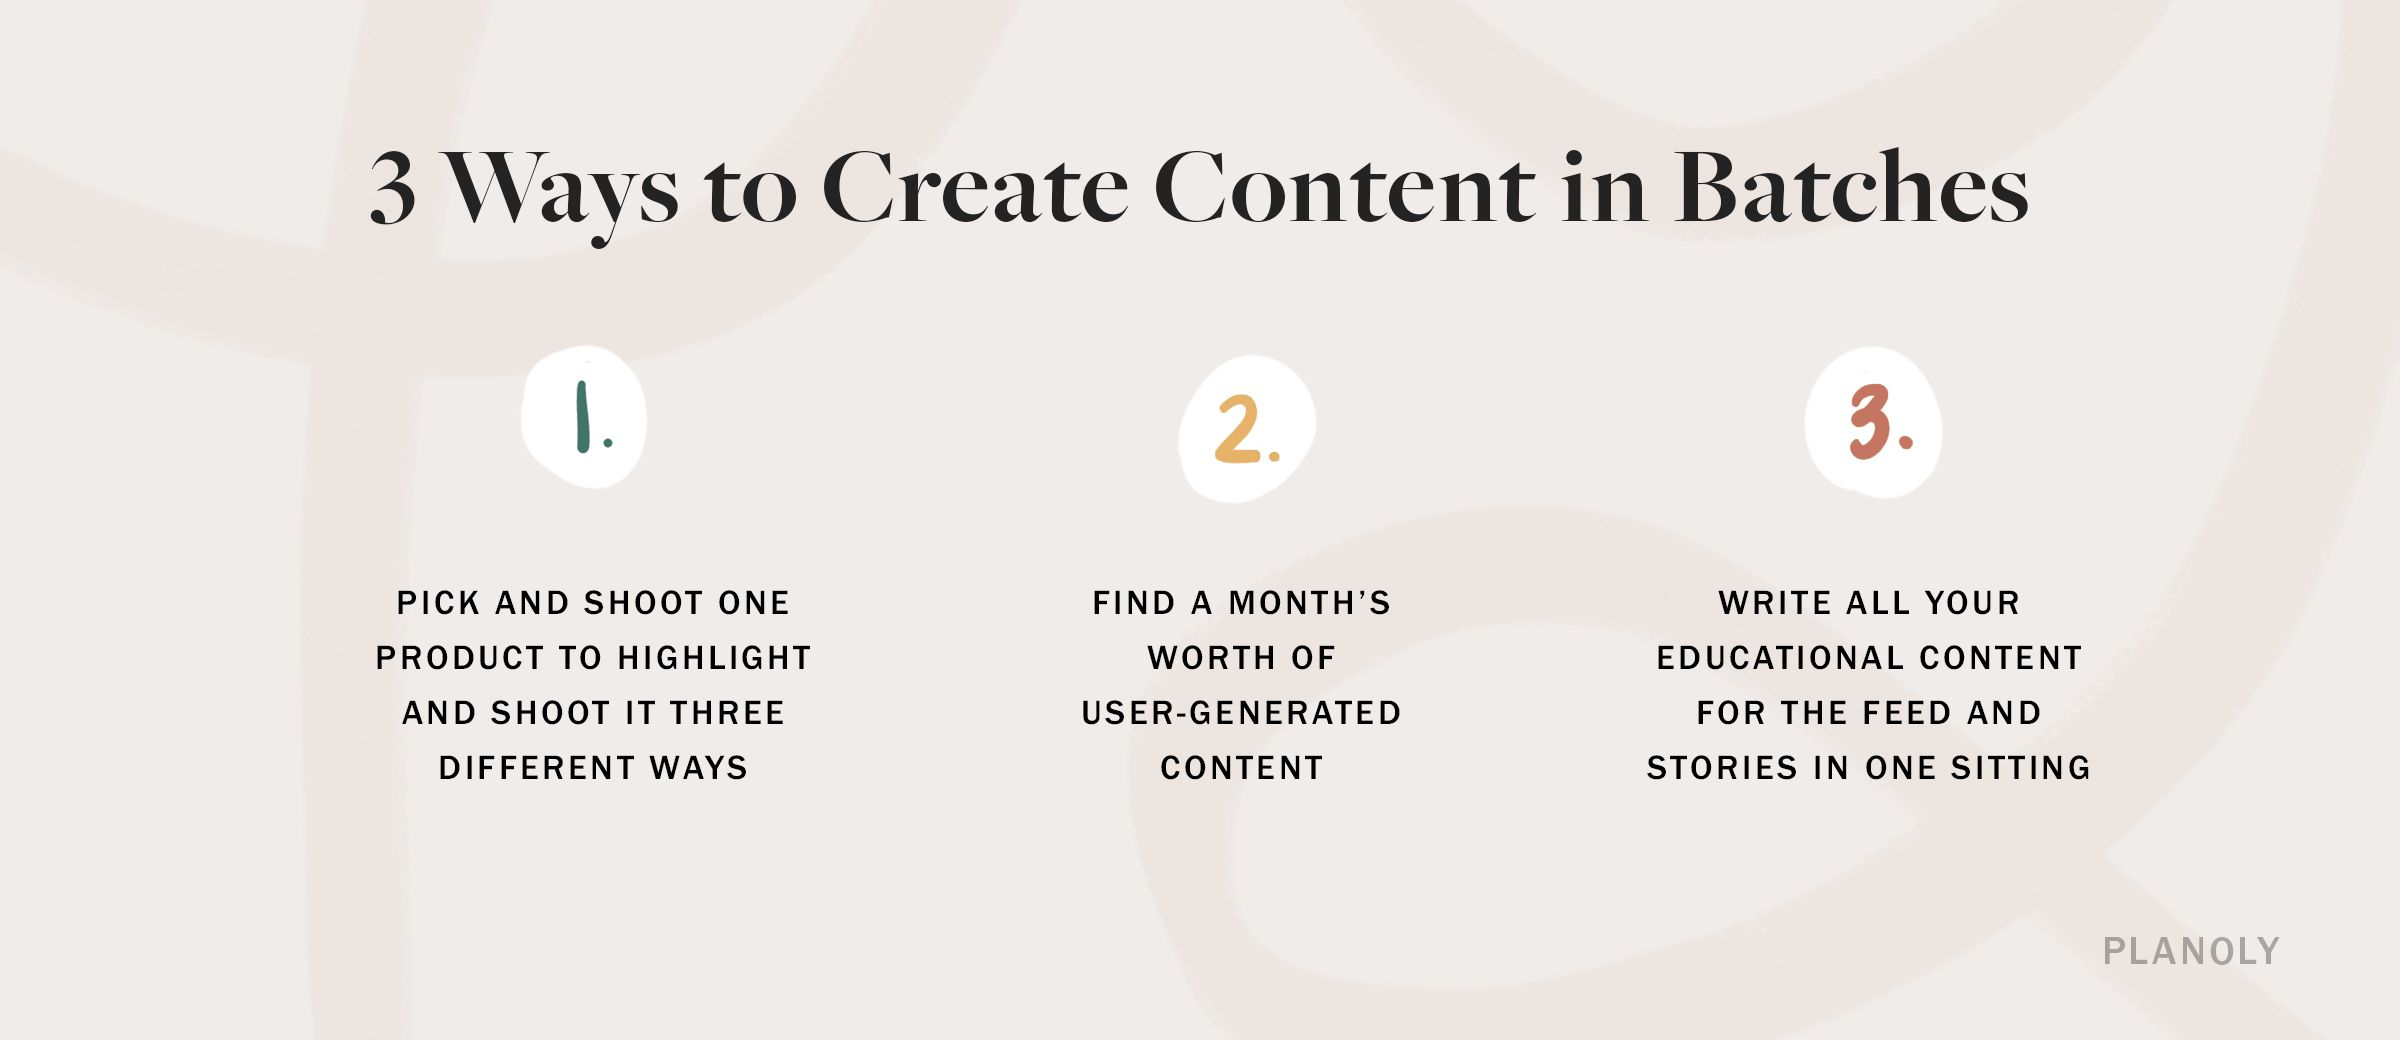 PLANOLY-Blog Post-Batching Content-Image 1